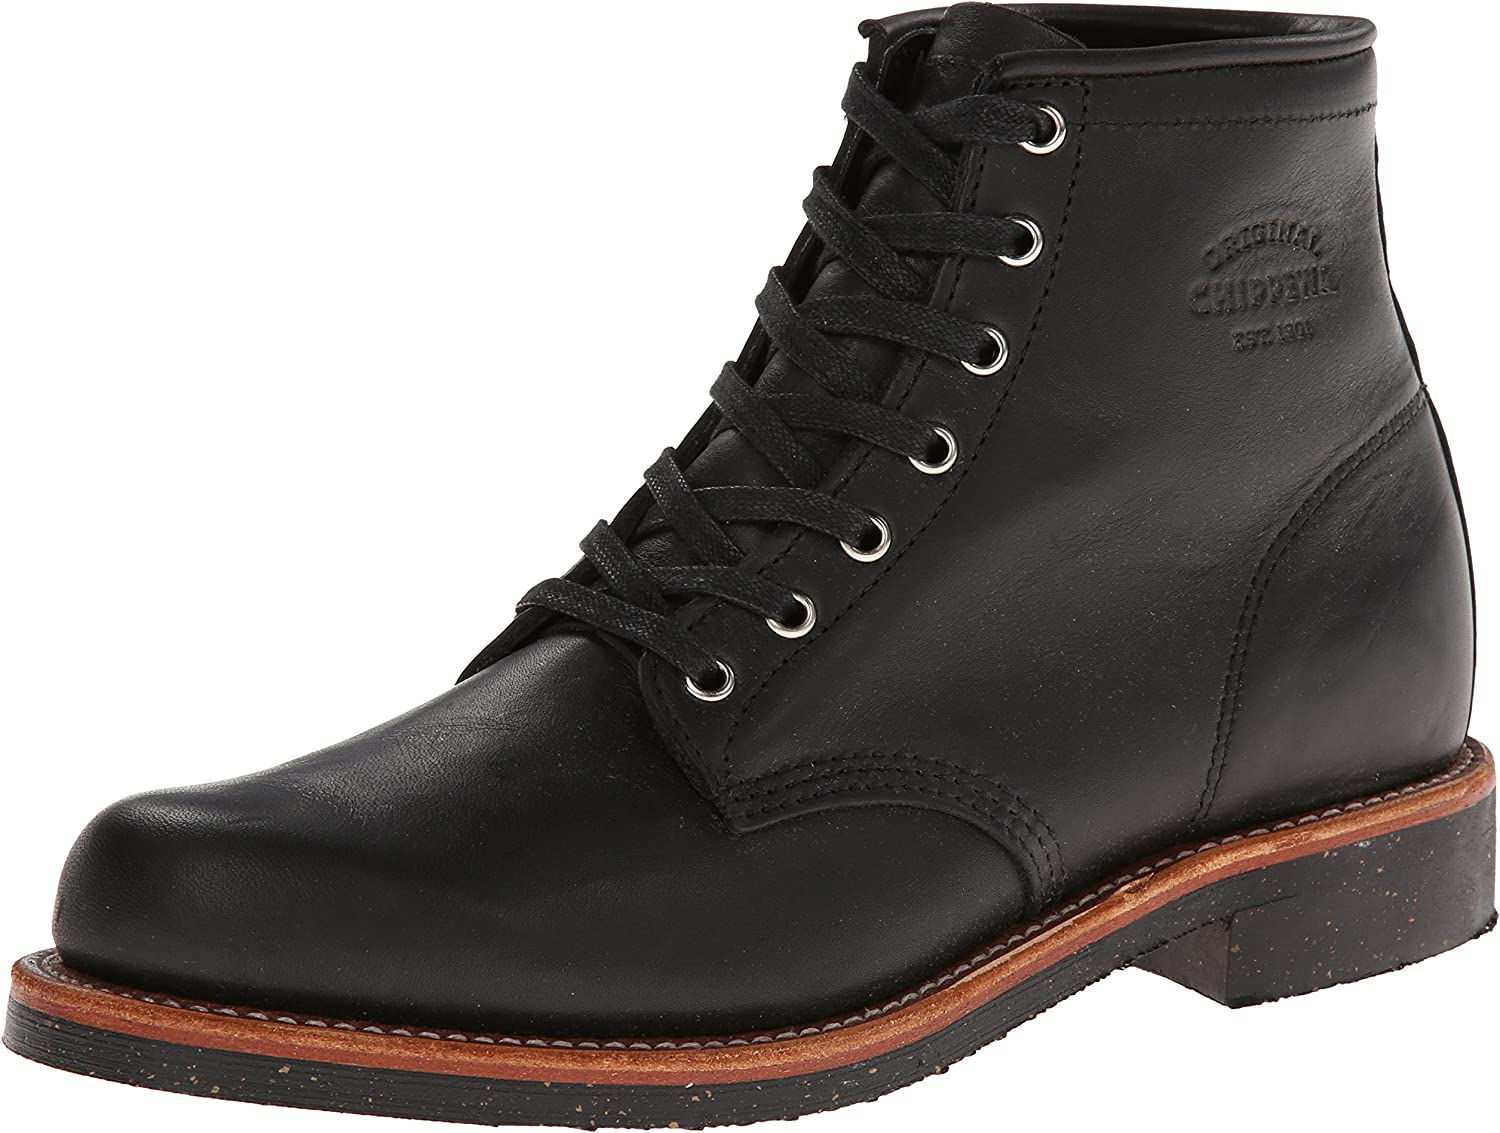 Original Chippewa Collection Men's Boot Baltimore Mall Utility 6-Inch Service Factory outlet